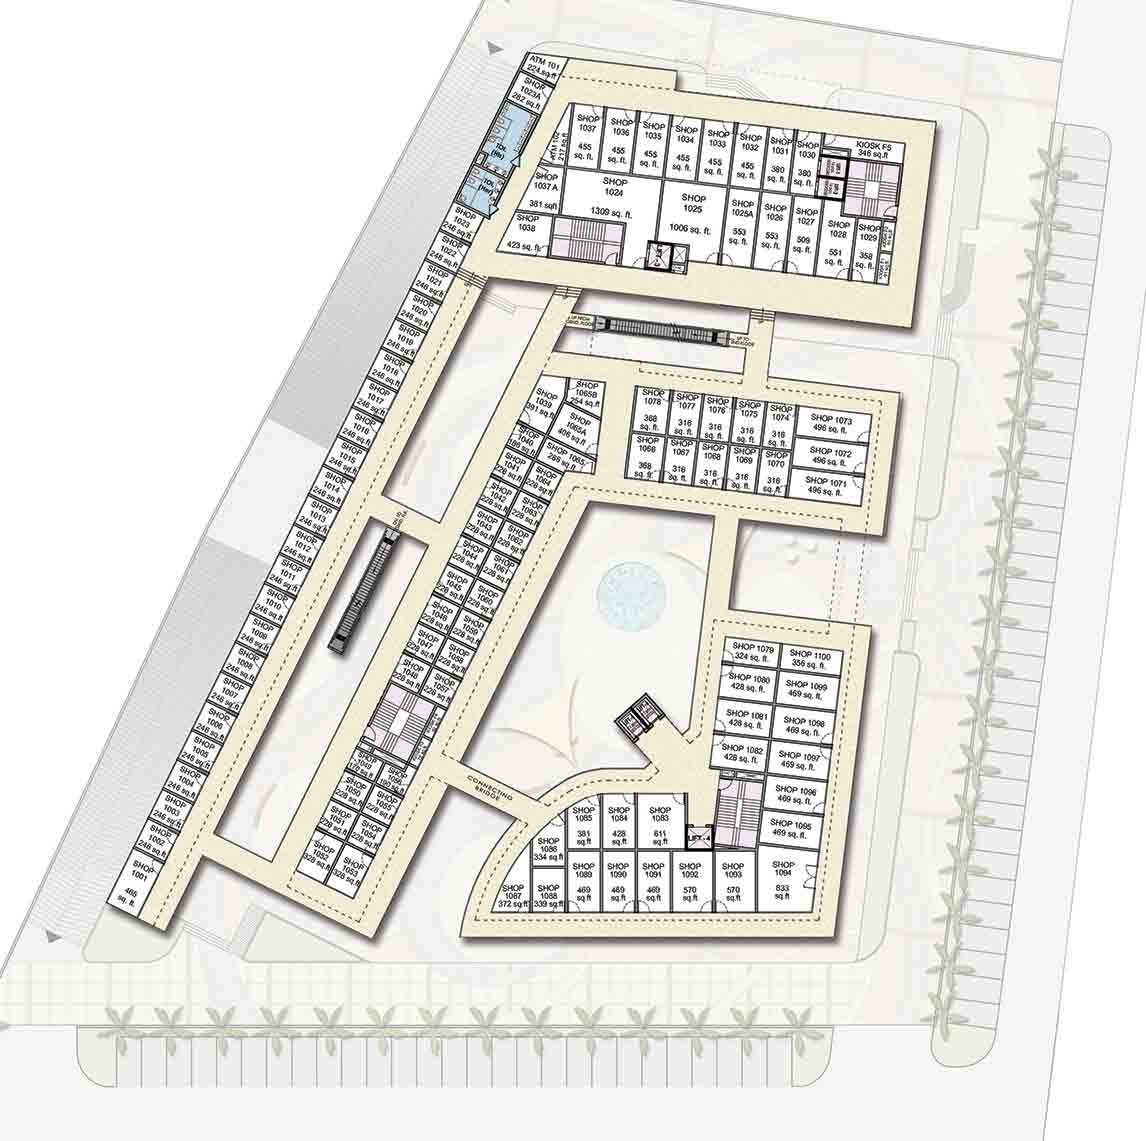 food court floor plan layout trend home design and decor 300 x 196 11 kb food court floor plan msugf edu about